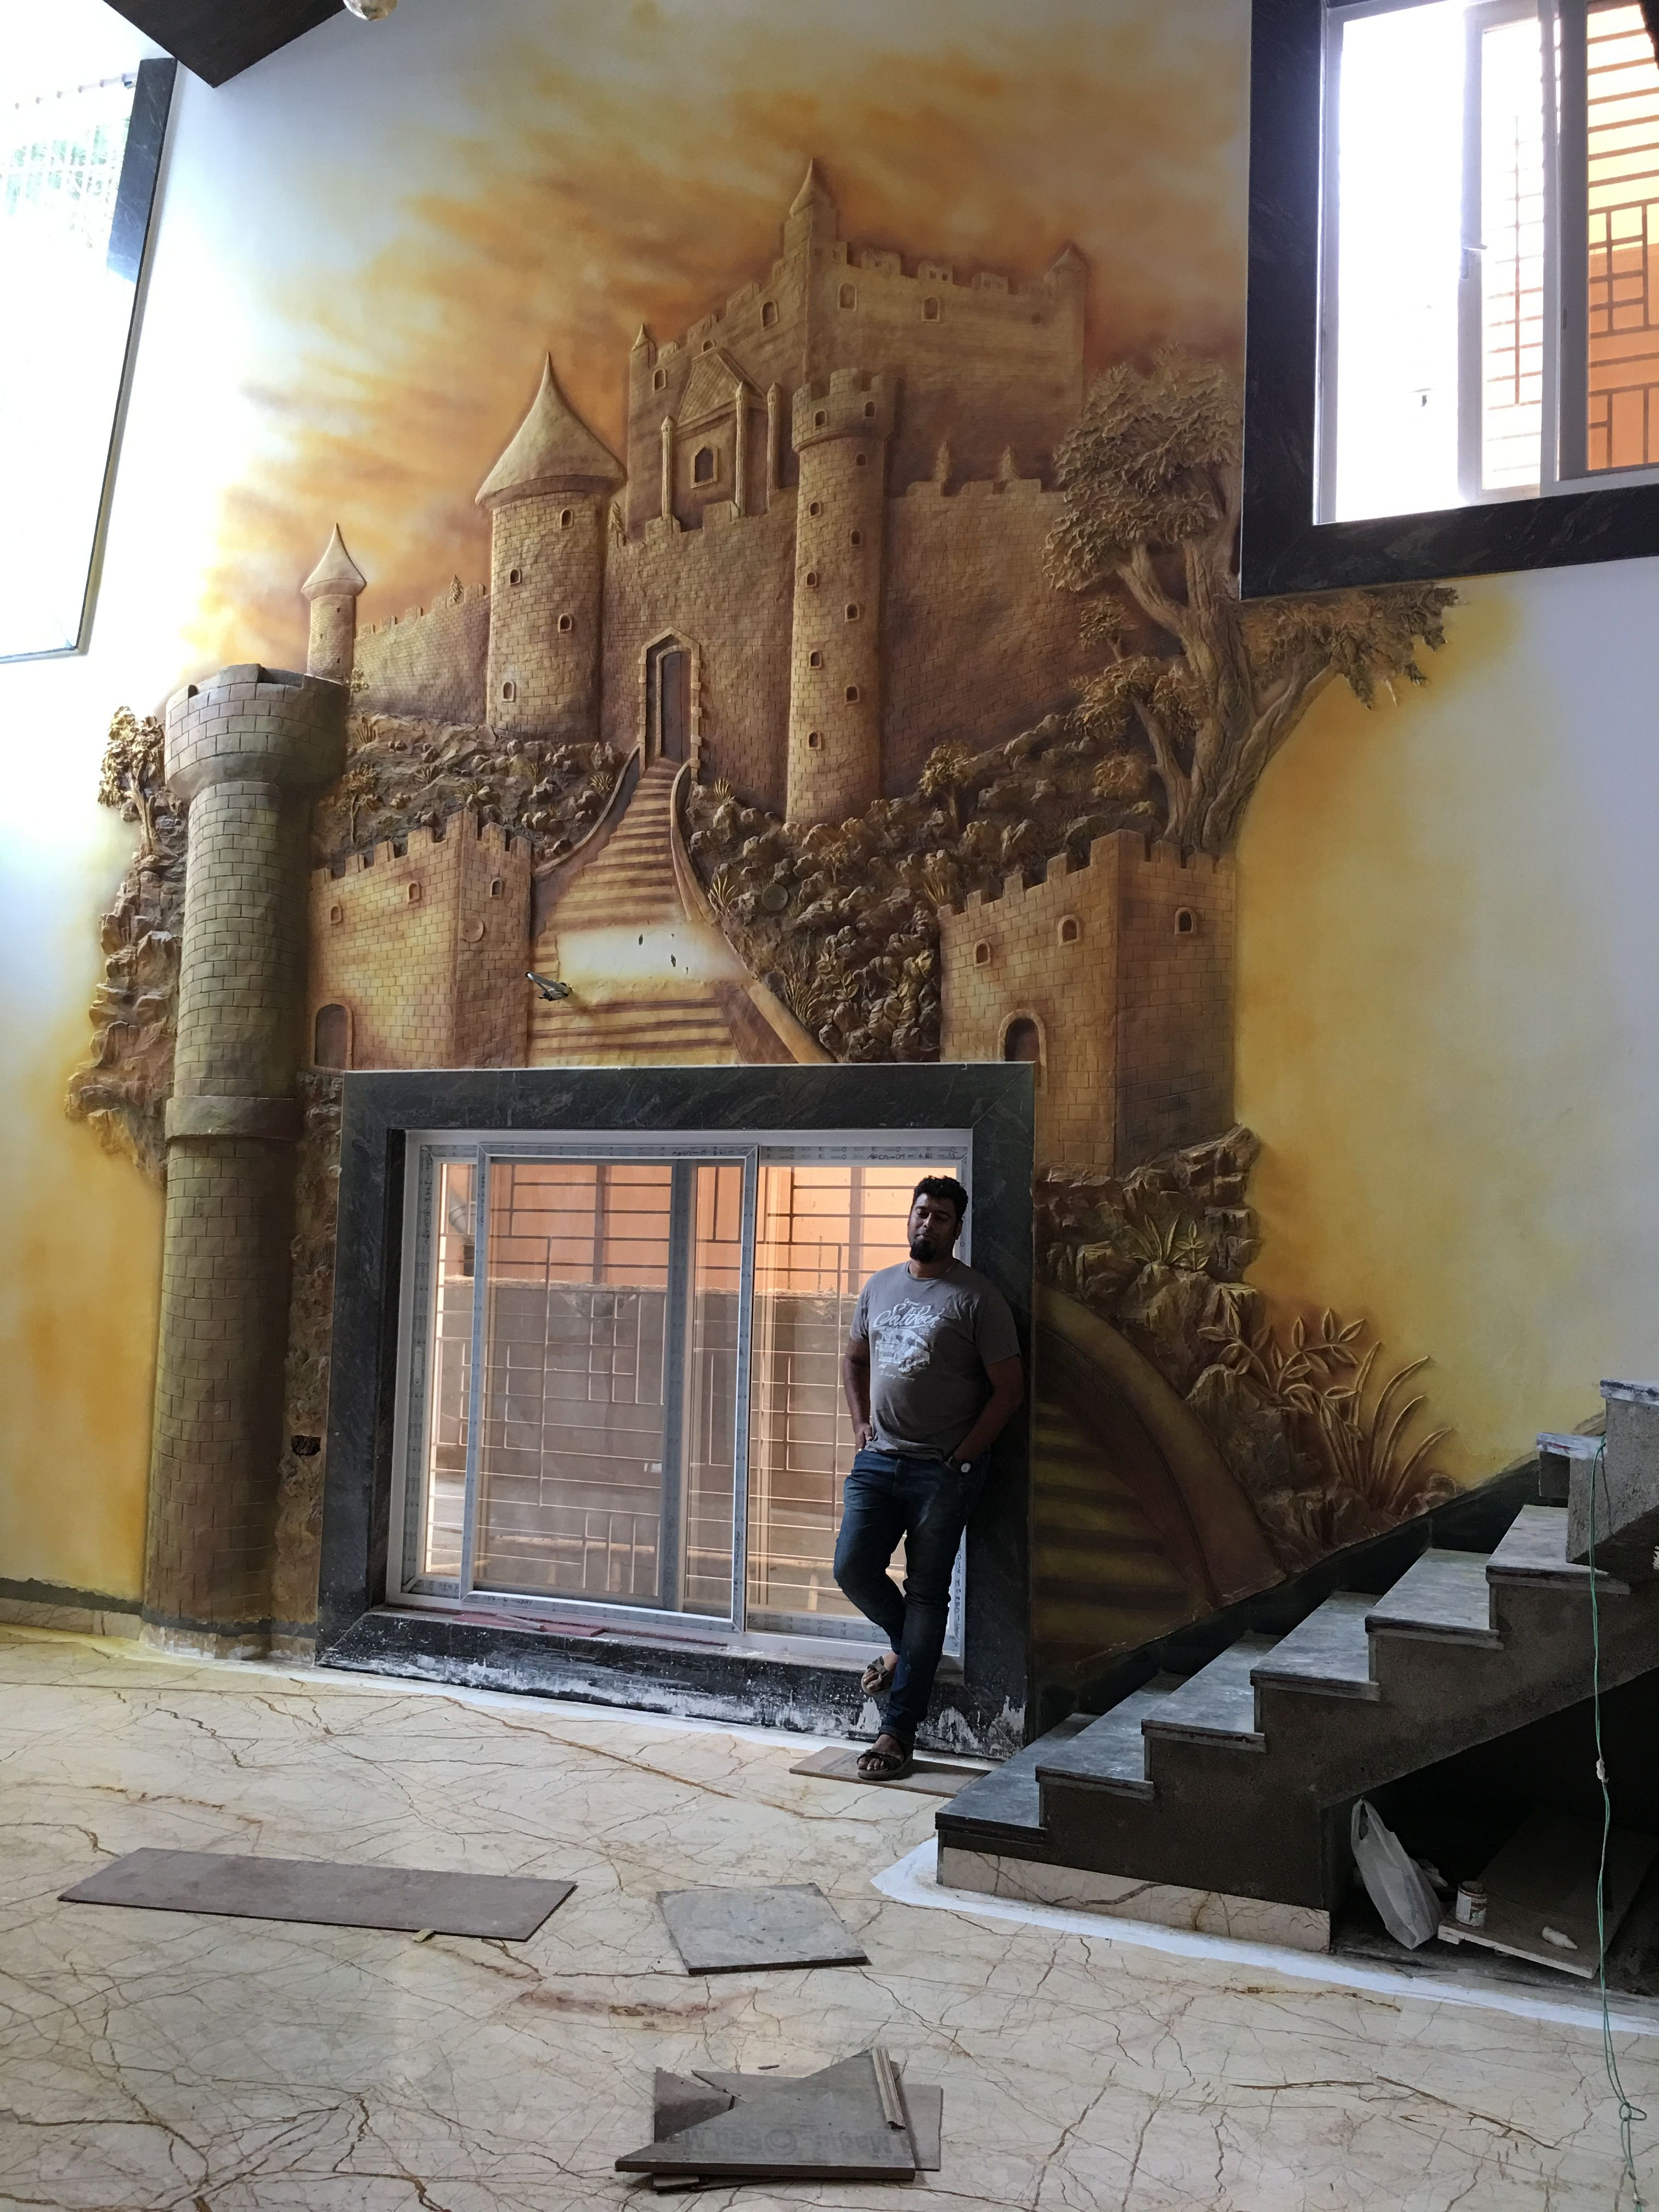 Dry wall mural in drawing hall of bangalow Mural Wall murals 3024x4032